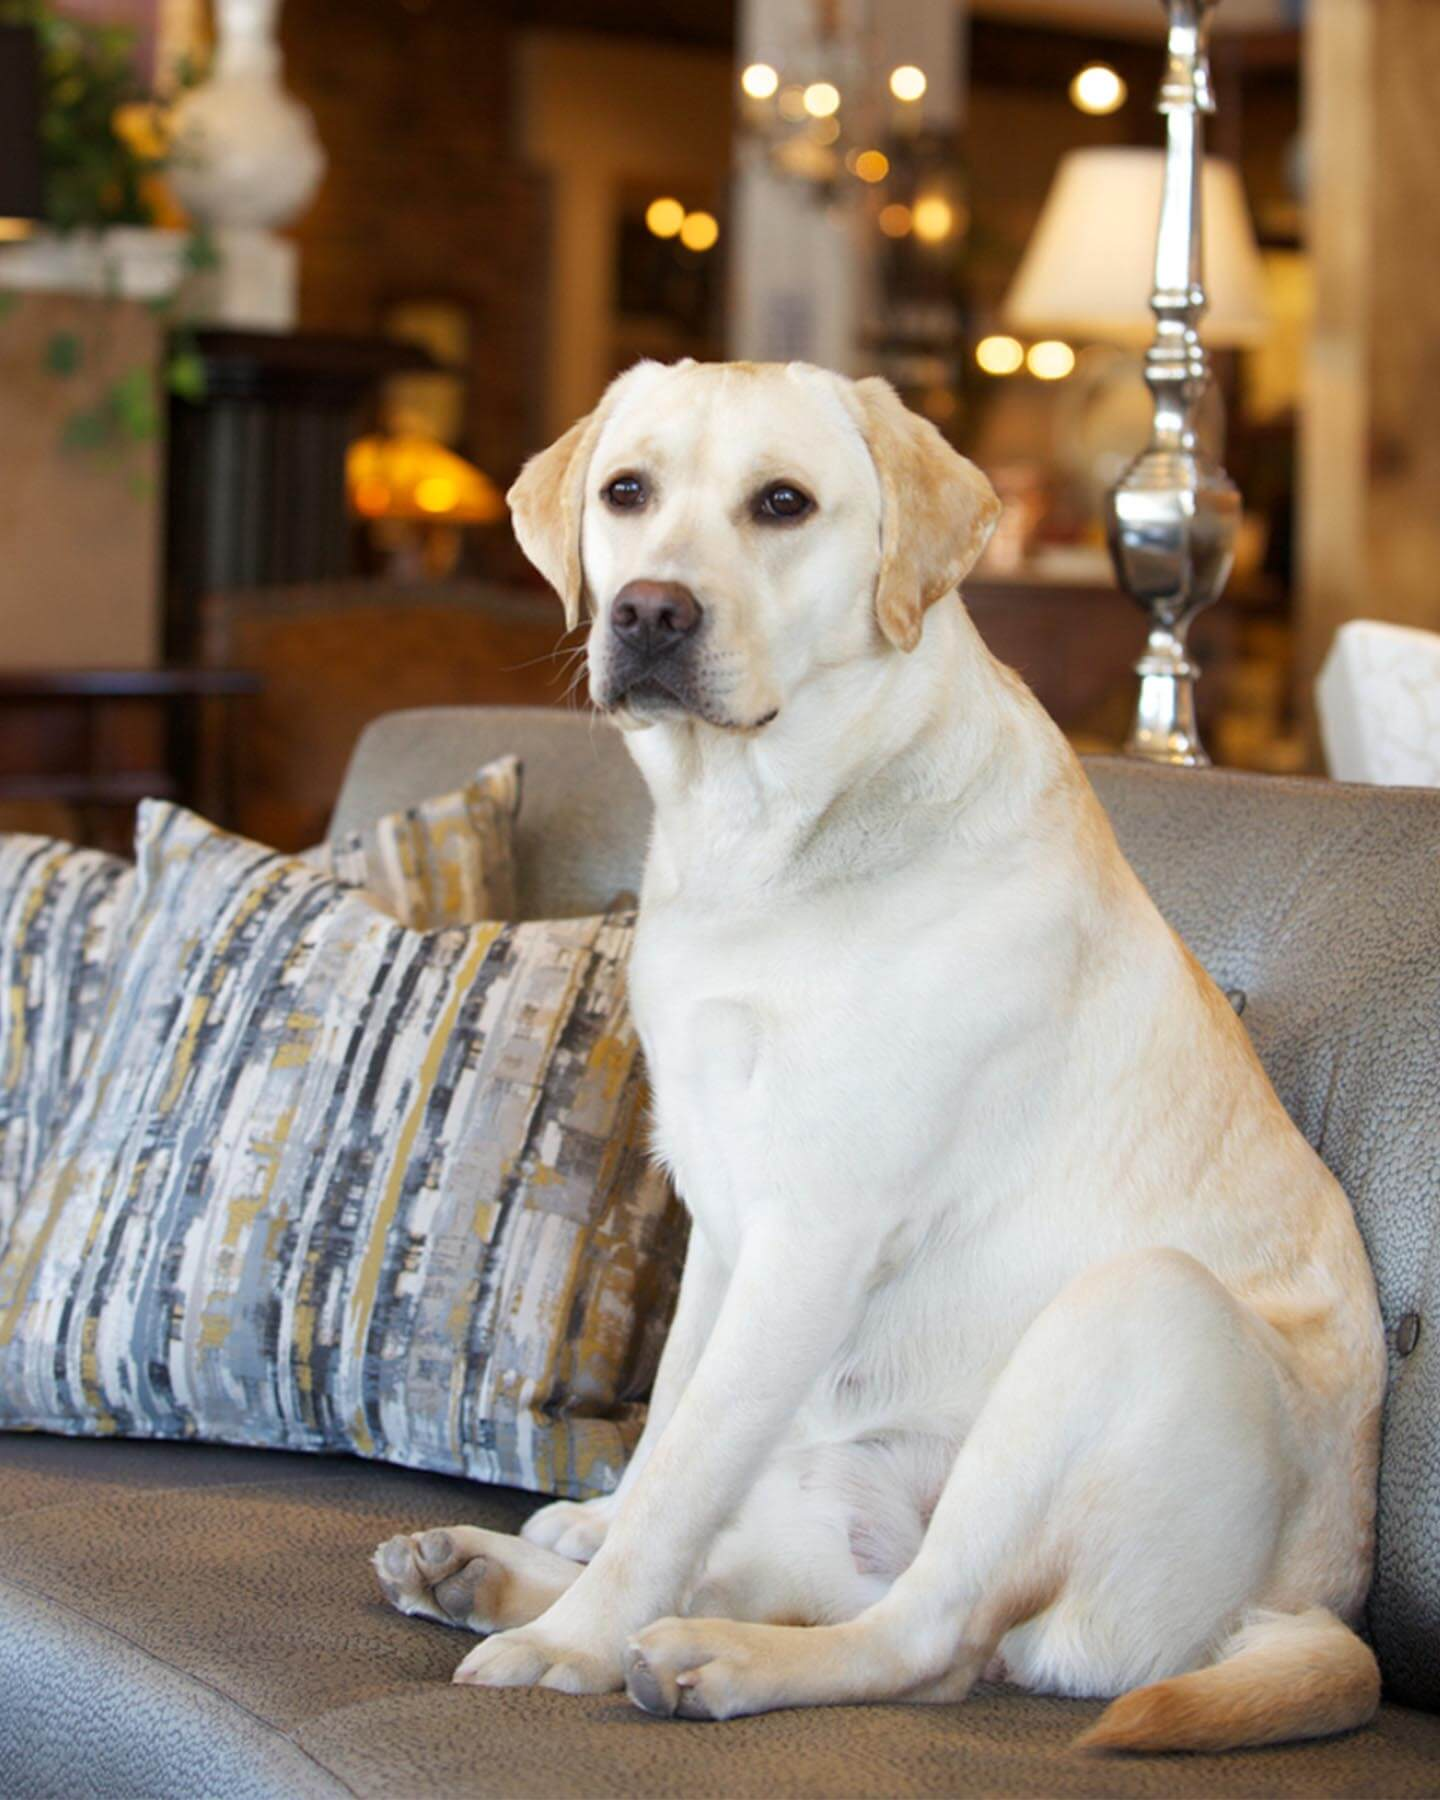 Dog on luxury furniture from Reid's.